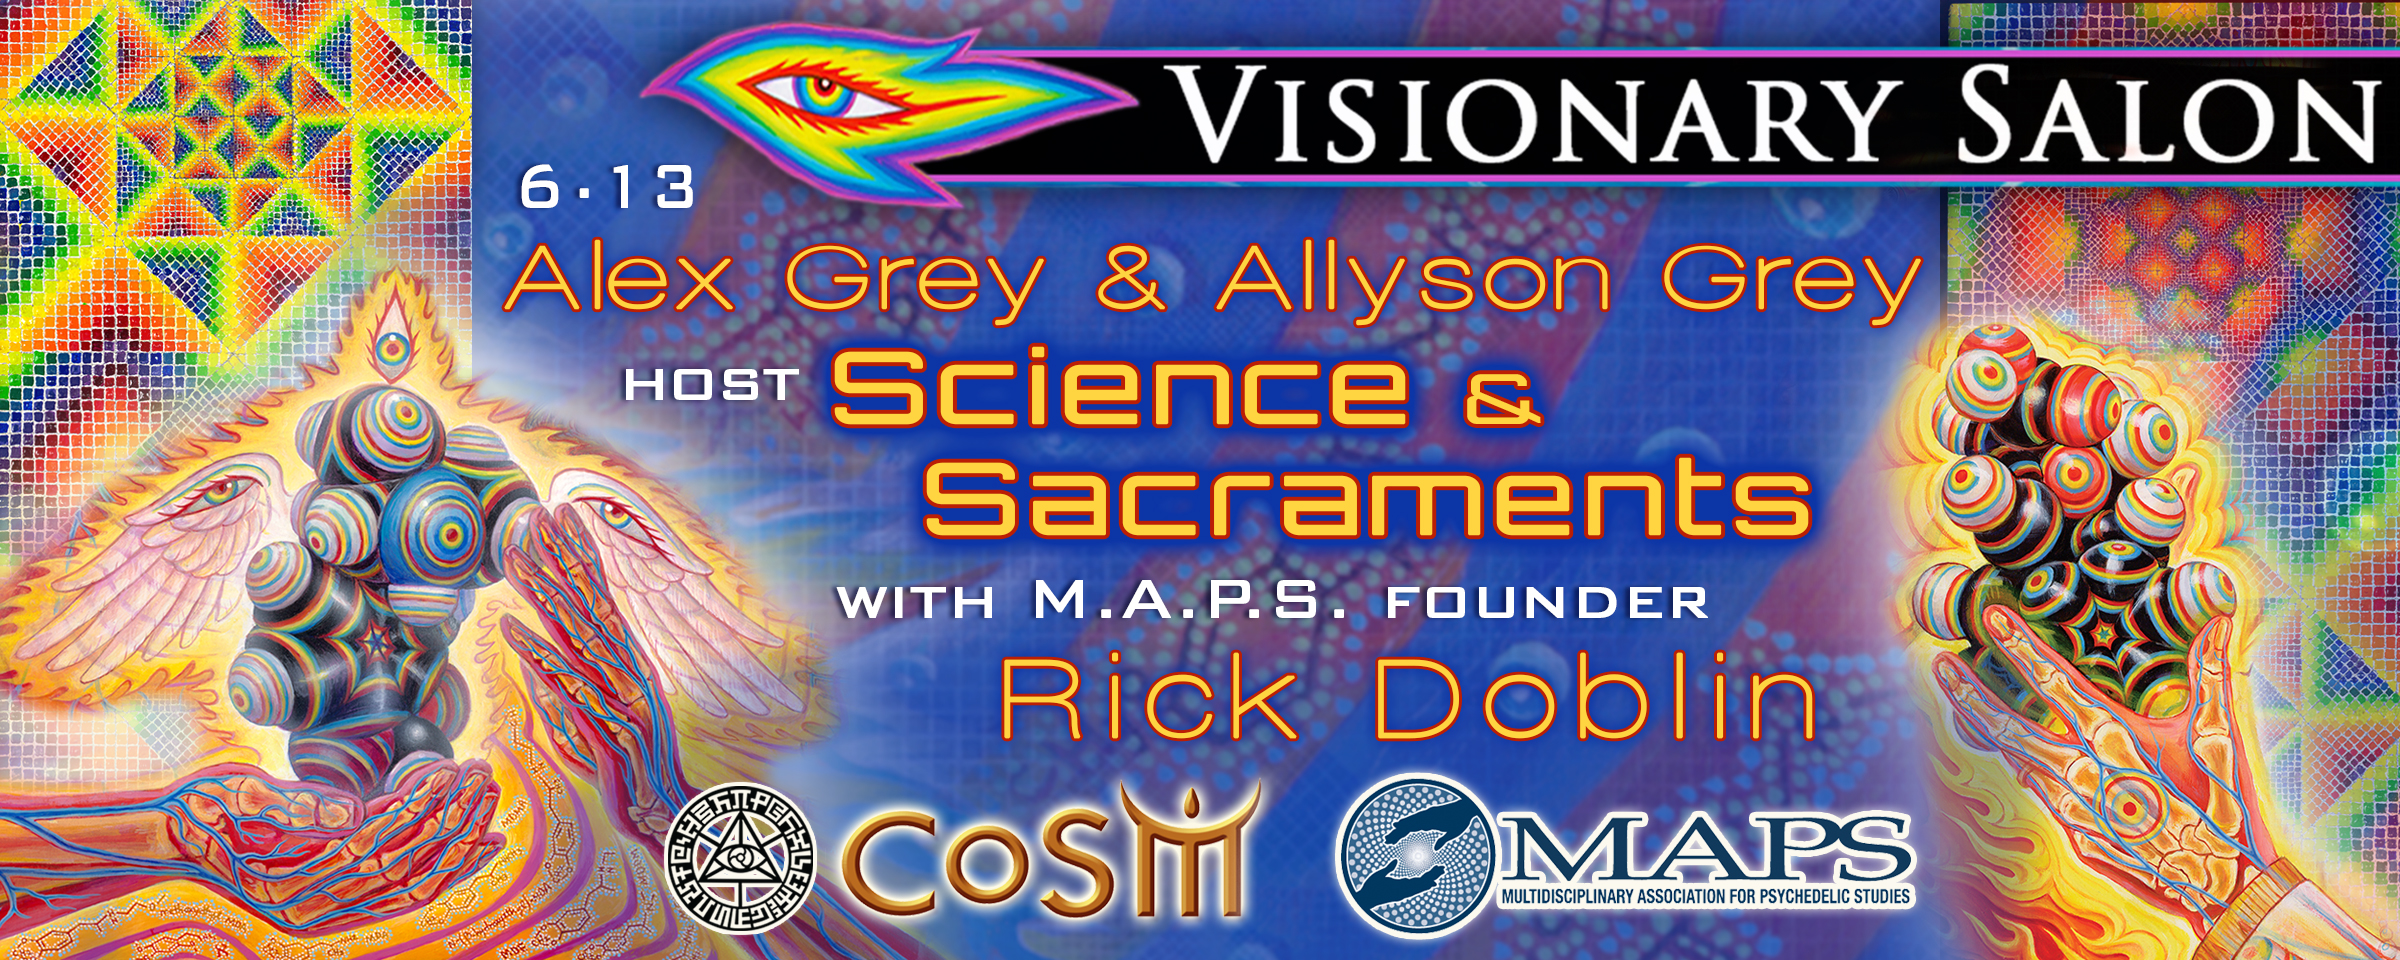 Visionary salon science sacraments with rick doblin for A visionary salon